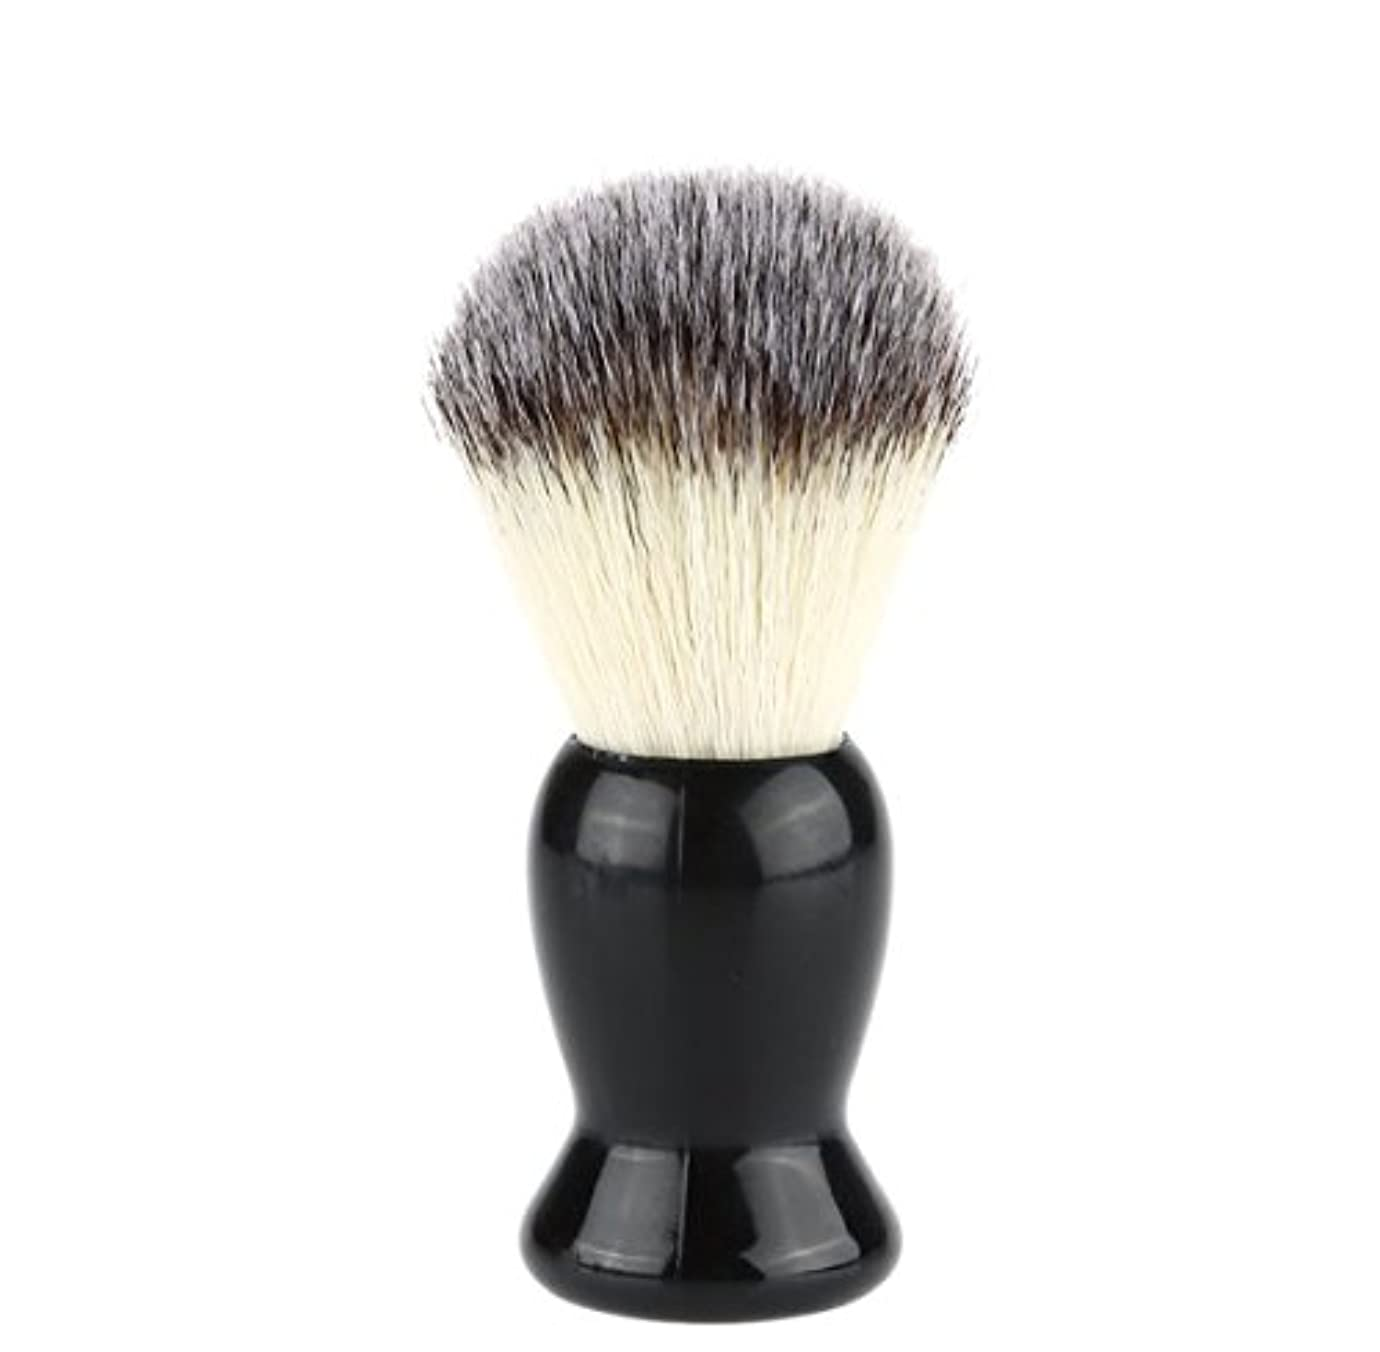 染色和解するウォーターフロントSuperb Barber Salon Shaving Brush Black Handle Face Beard Cleaning Men Shaving Razor Brush Cleaning Appliance...